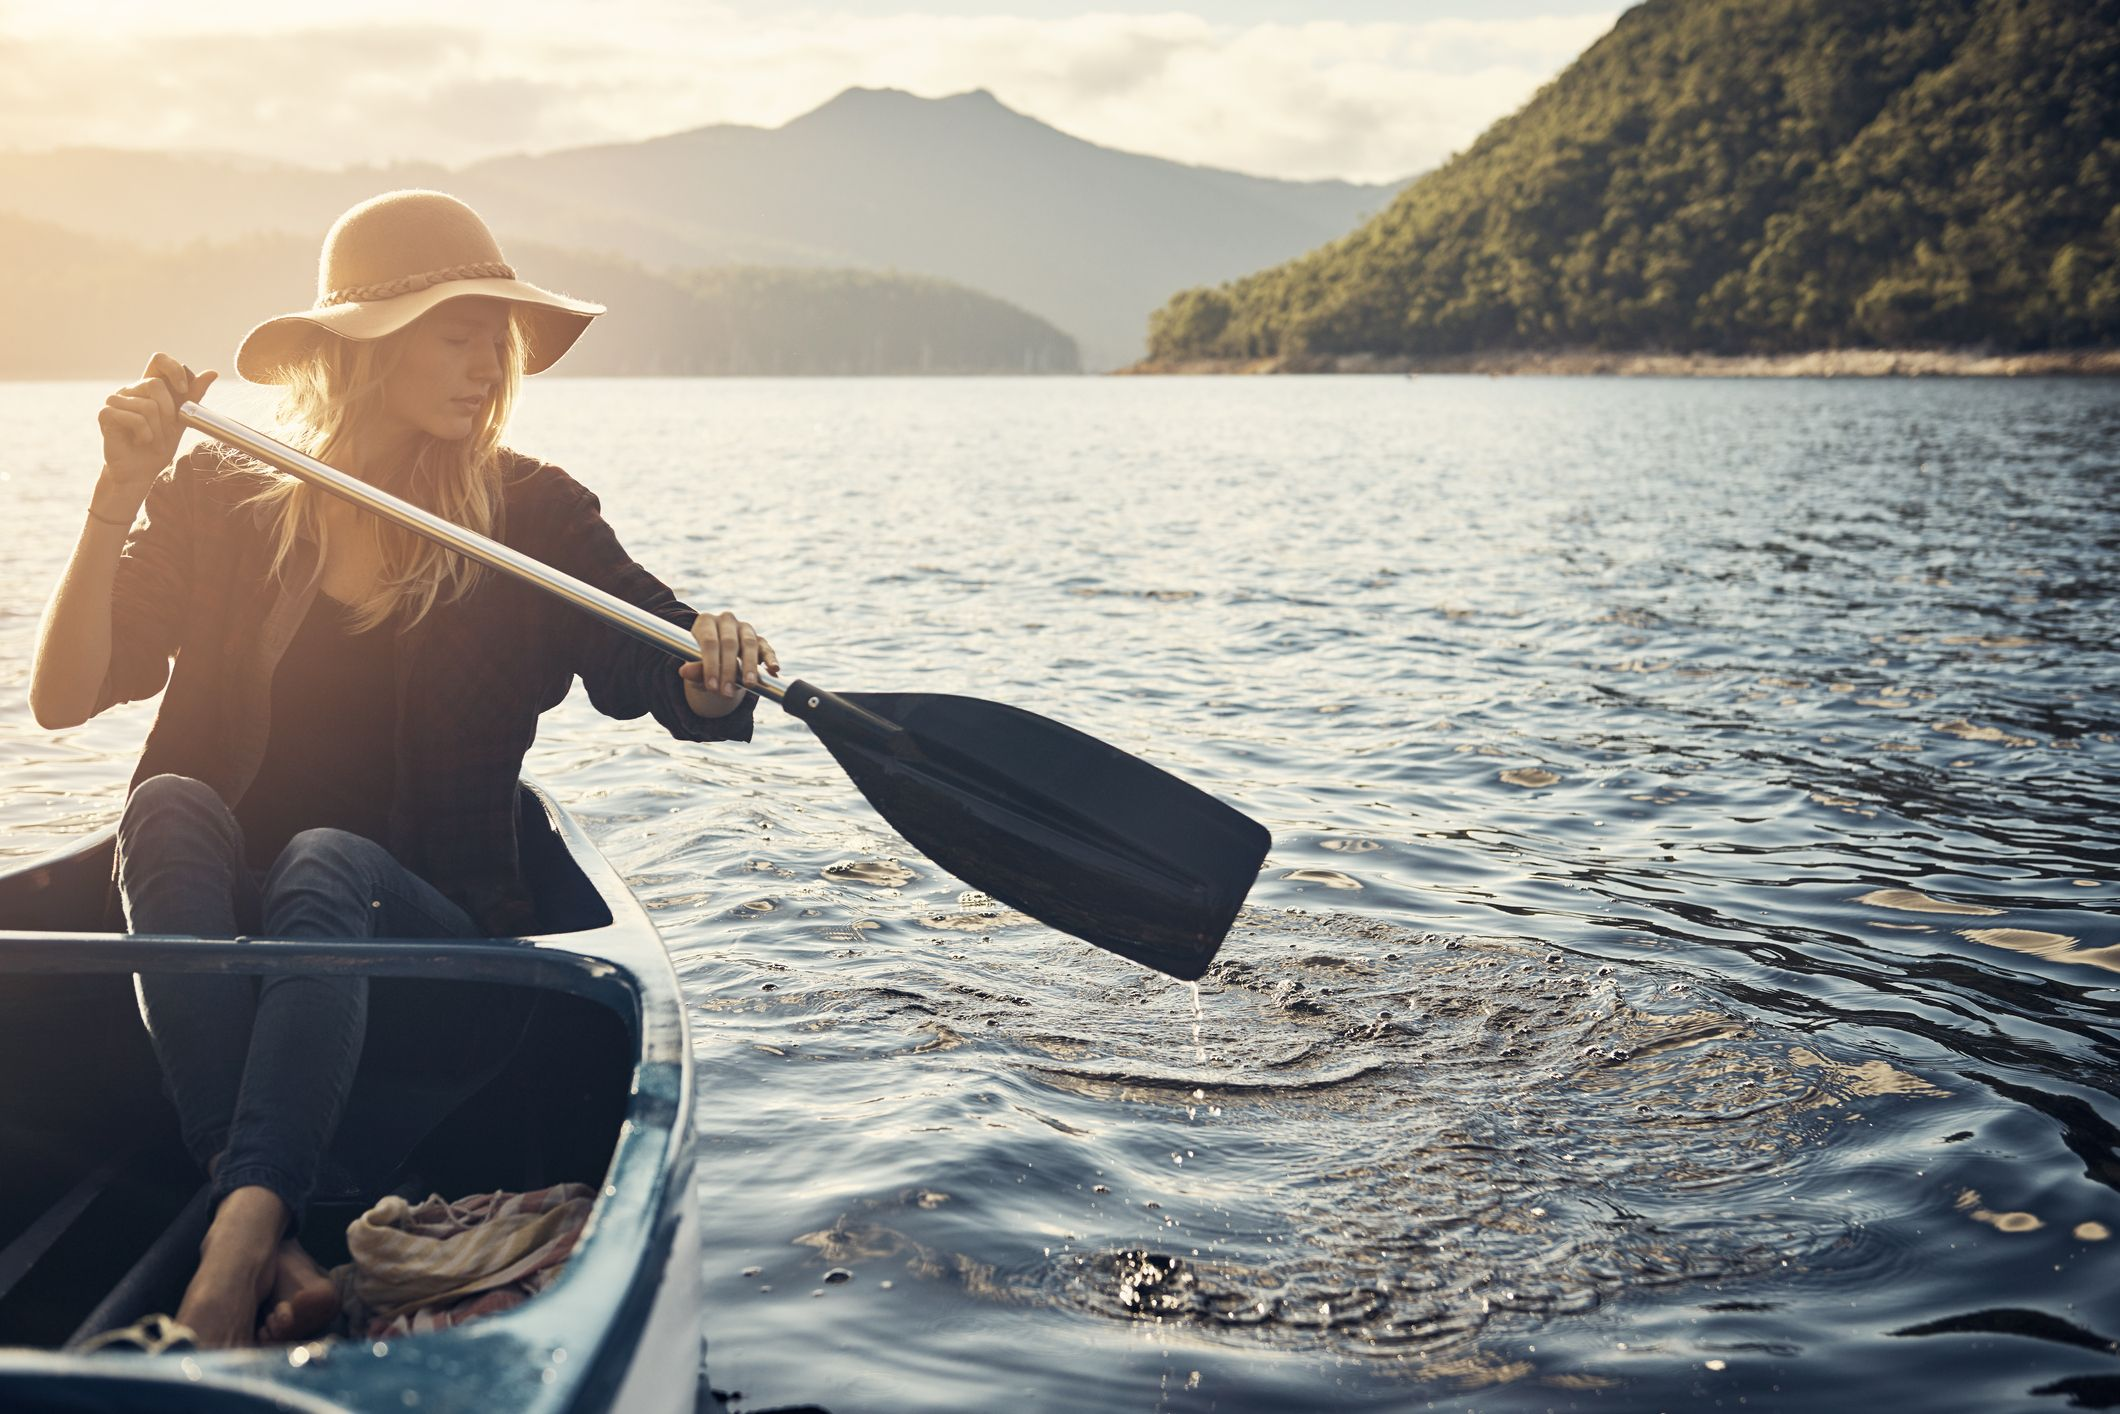 A woman boating on a lake for self-care and solitude